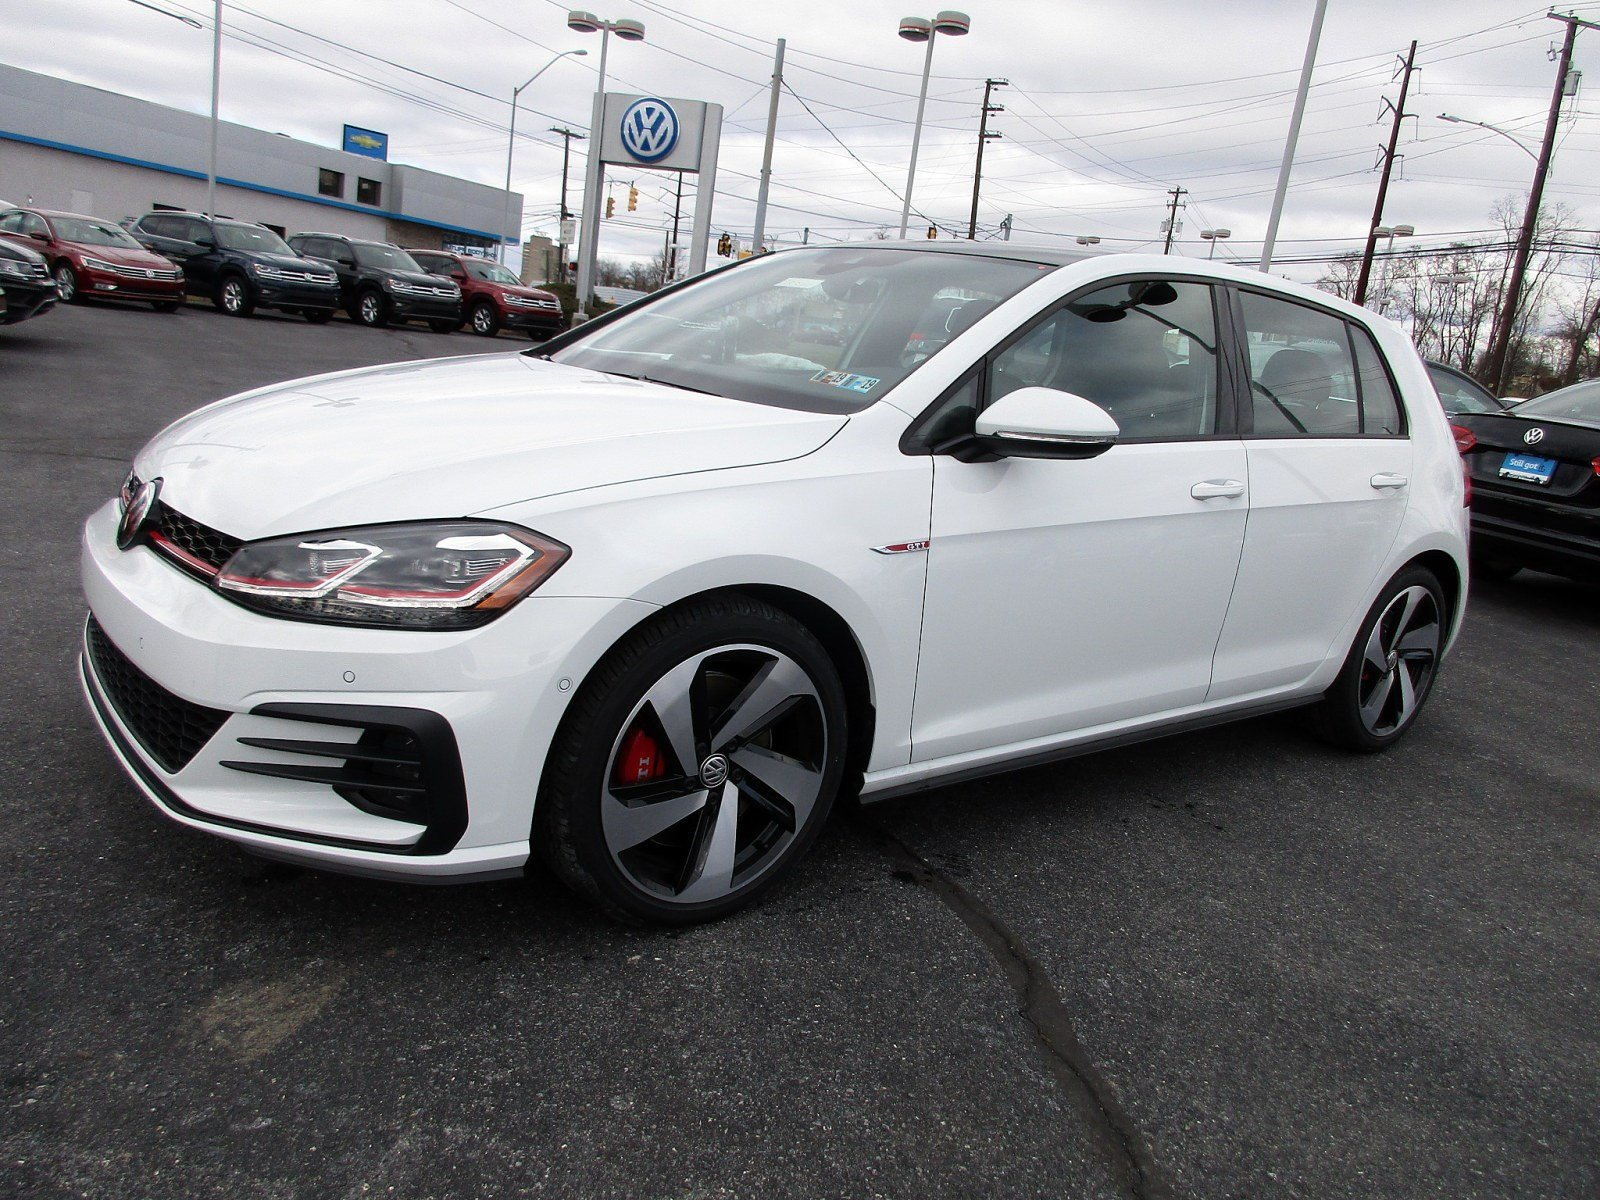 New 2018 Volkswagen Golf GTI Autobahn Hatchback in Harrisburg